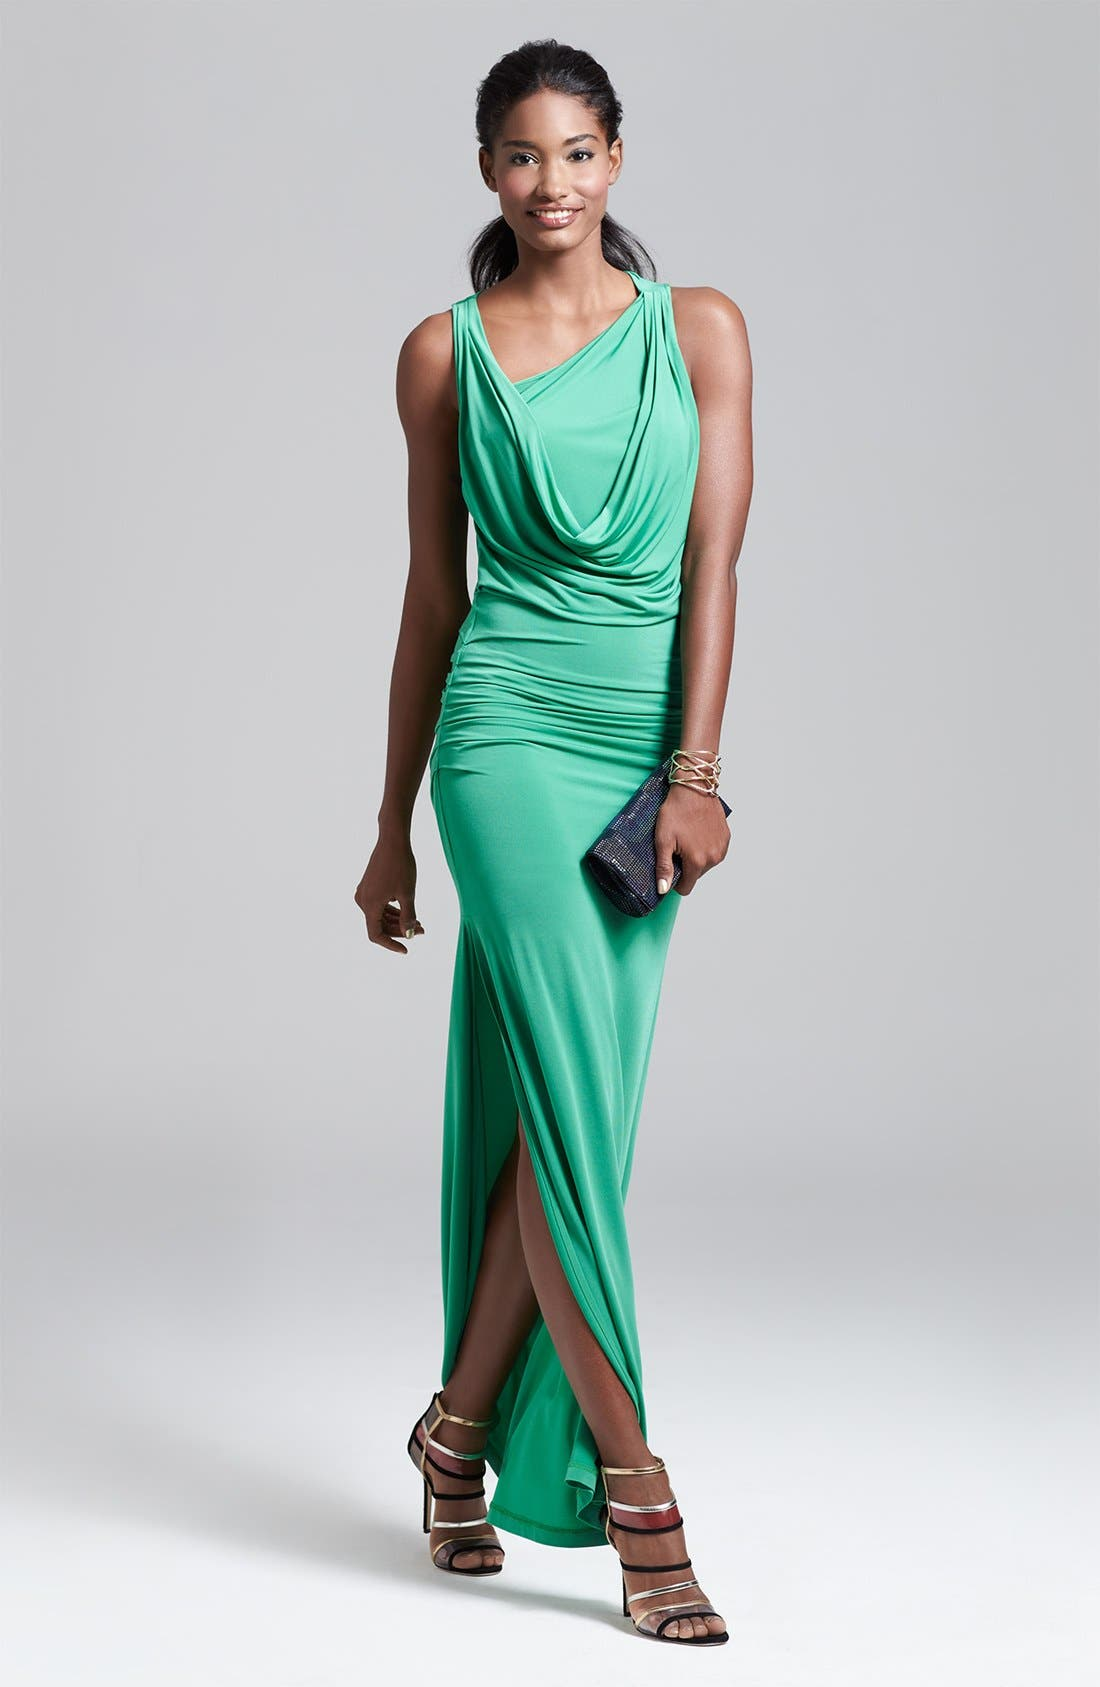 Alternate Image 1 Selected - BCBGMAXAZRIA Jersey Gown & Accessories